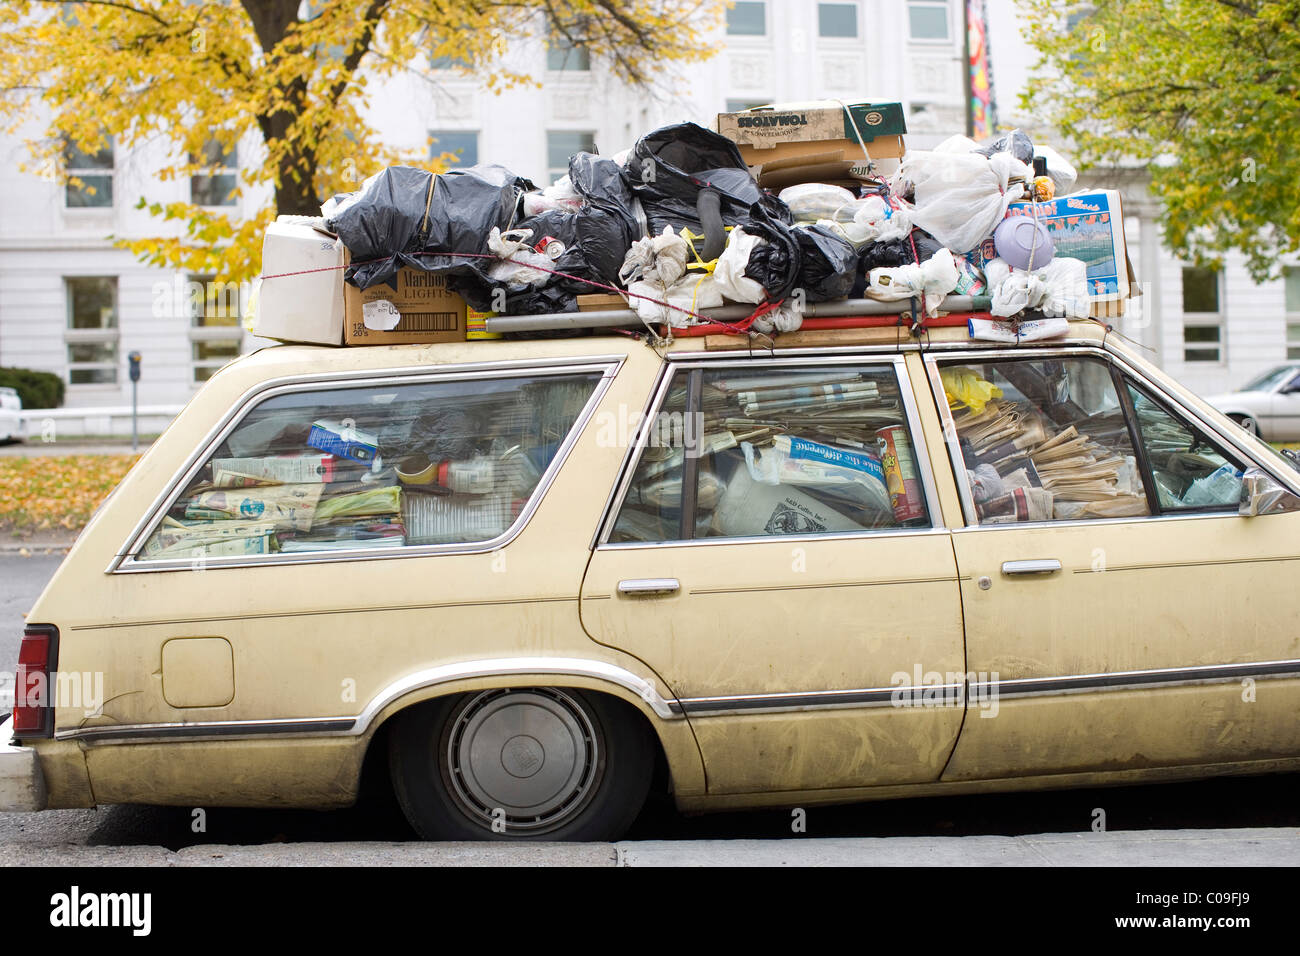 A parked car filled with garbage and recyclable material - Stock Image